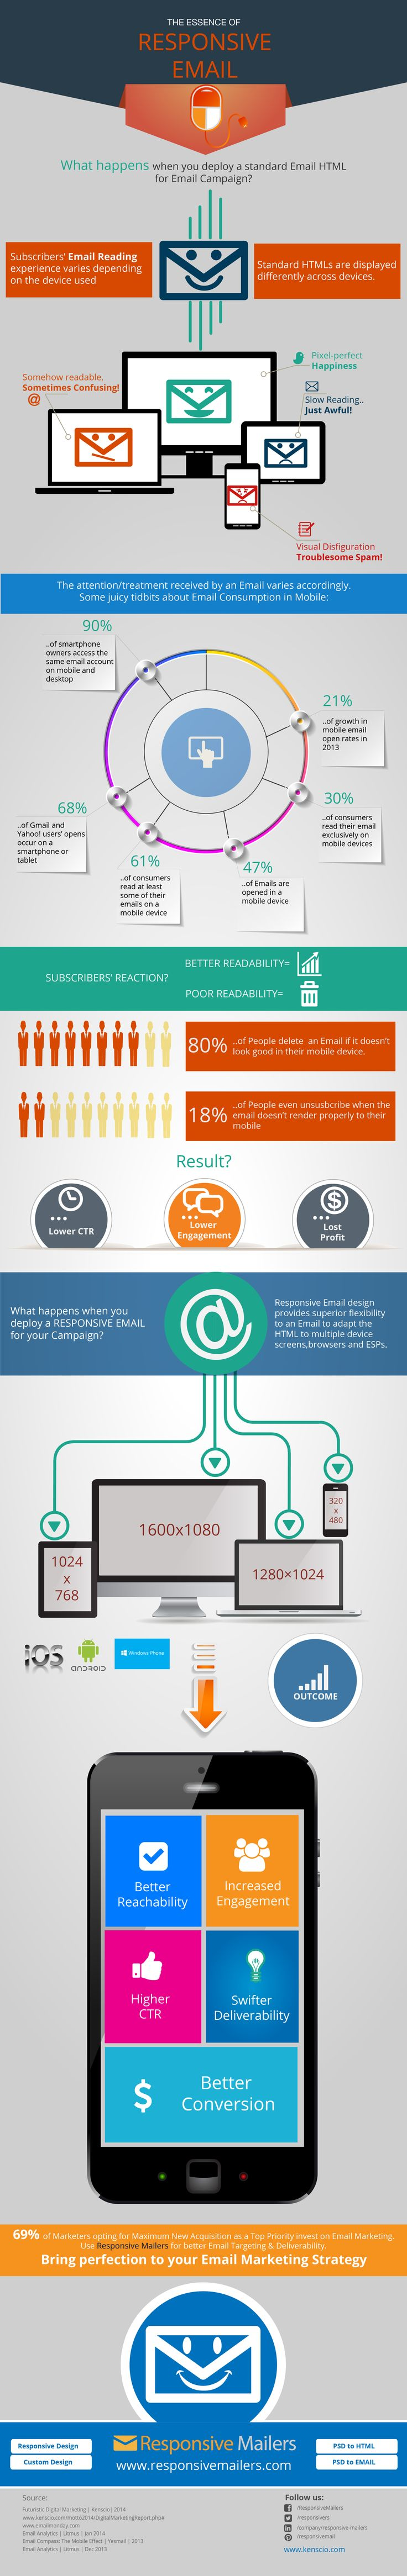 The Essence of Responsive Email #infographics #email #marketing #digital #marketing #responsive #design #mobile #branding